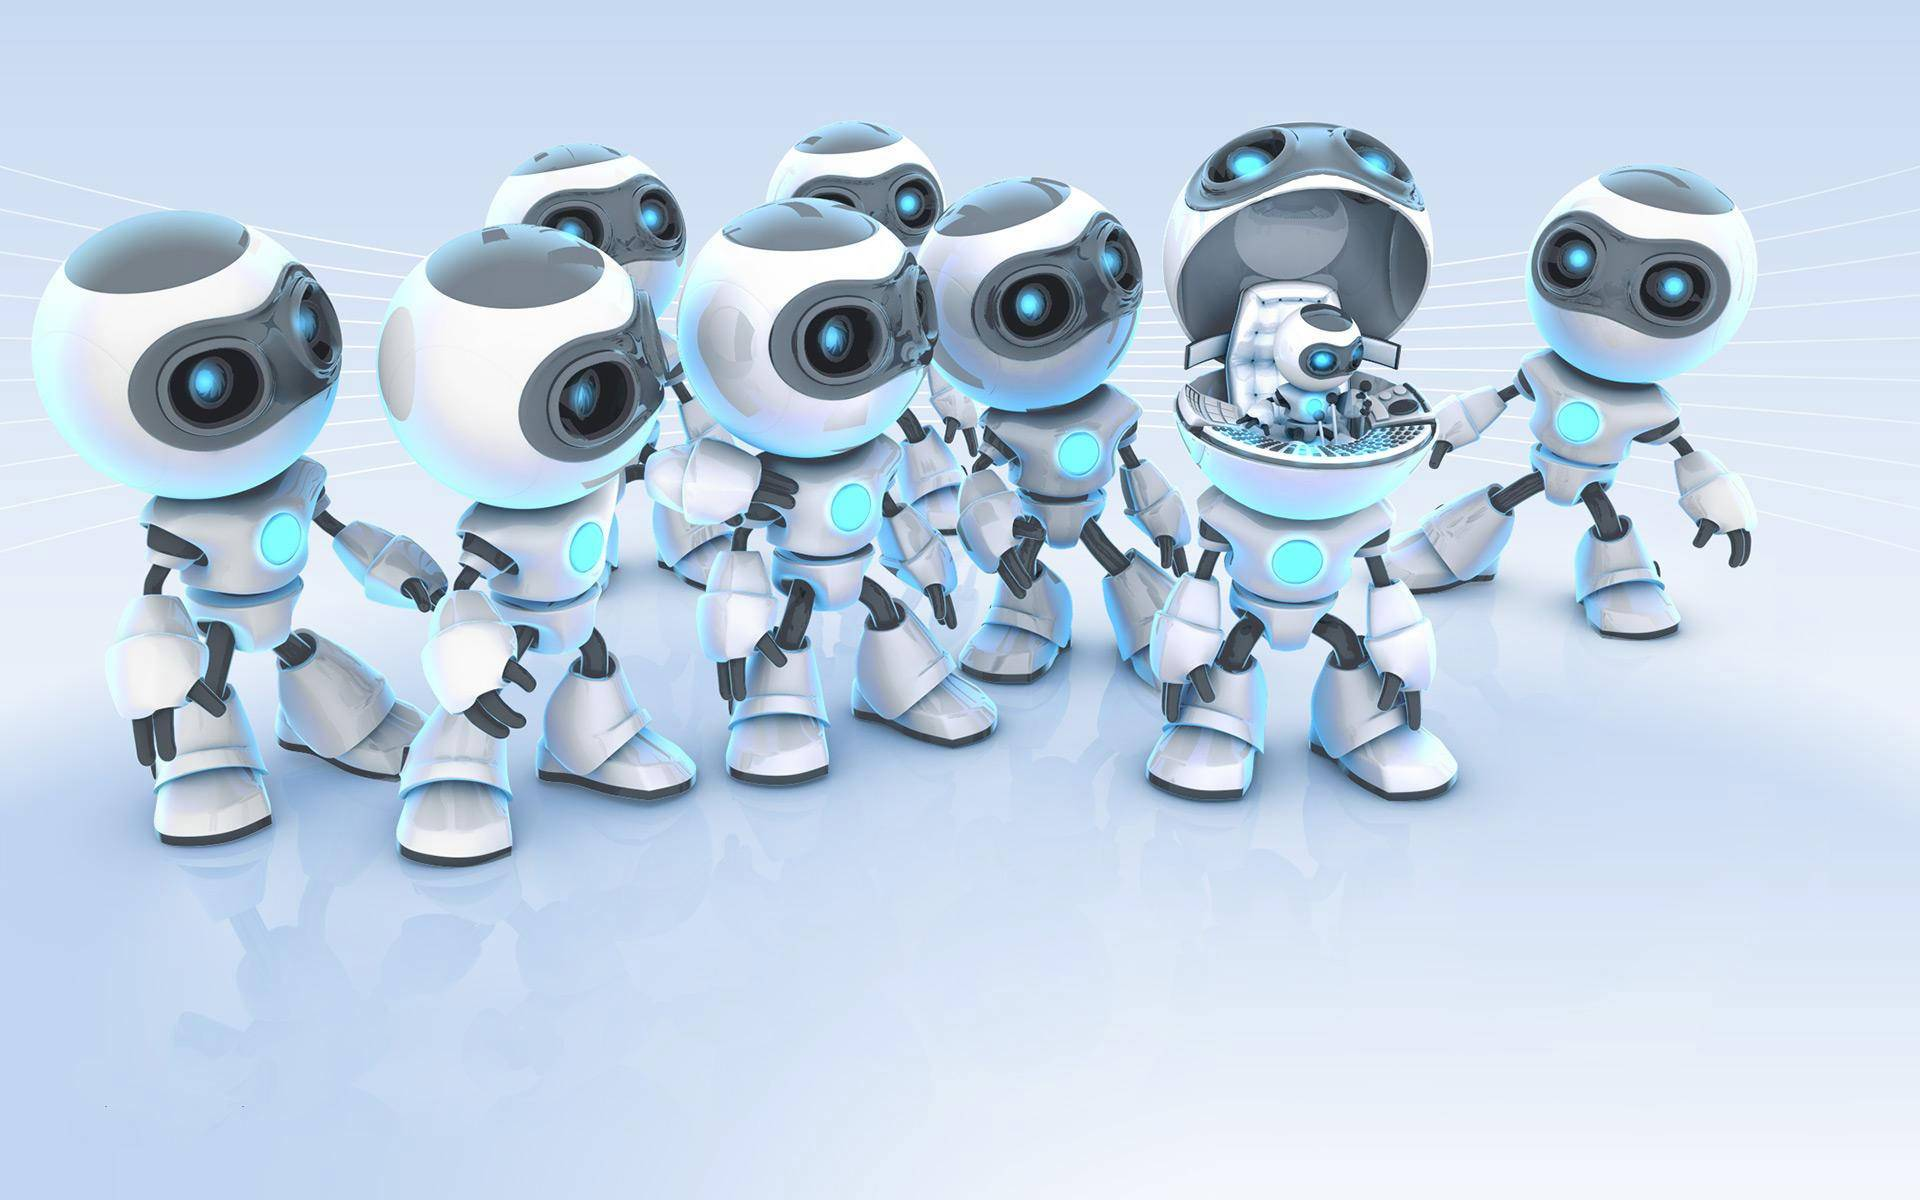 3d robots wallpaper background